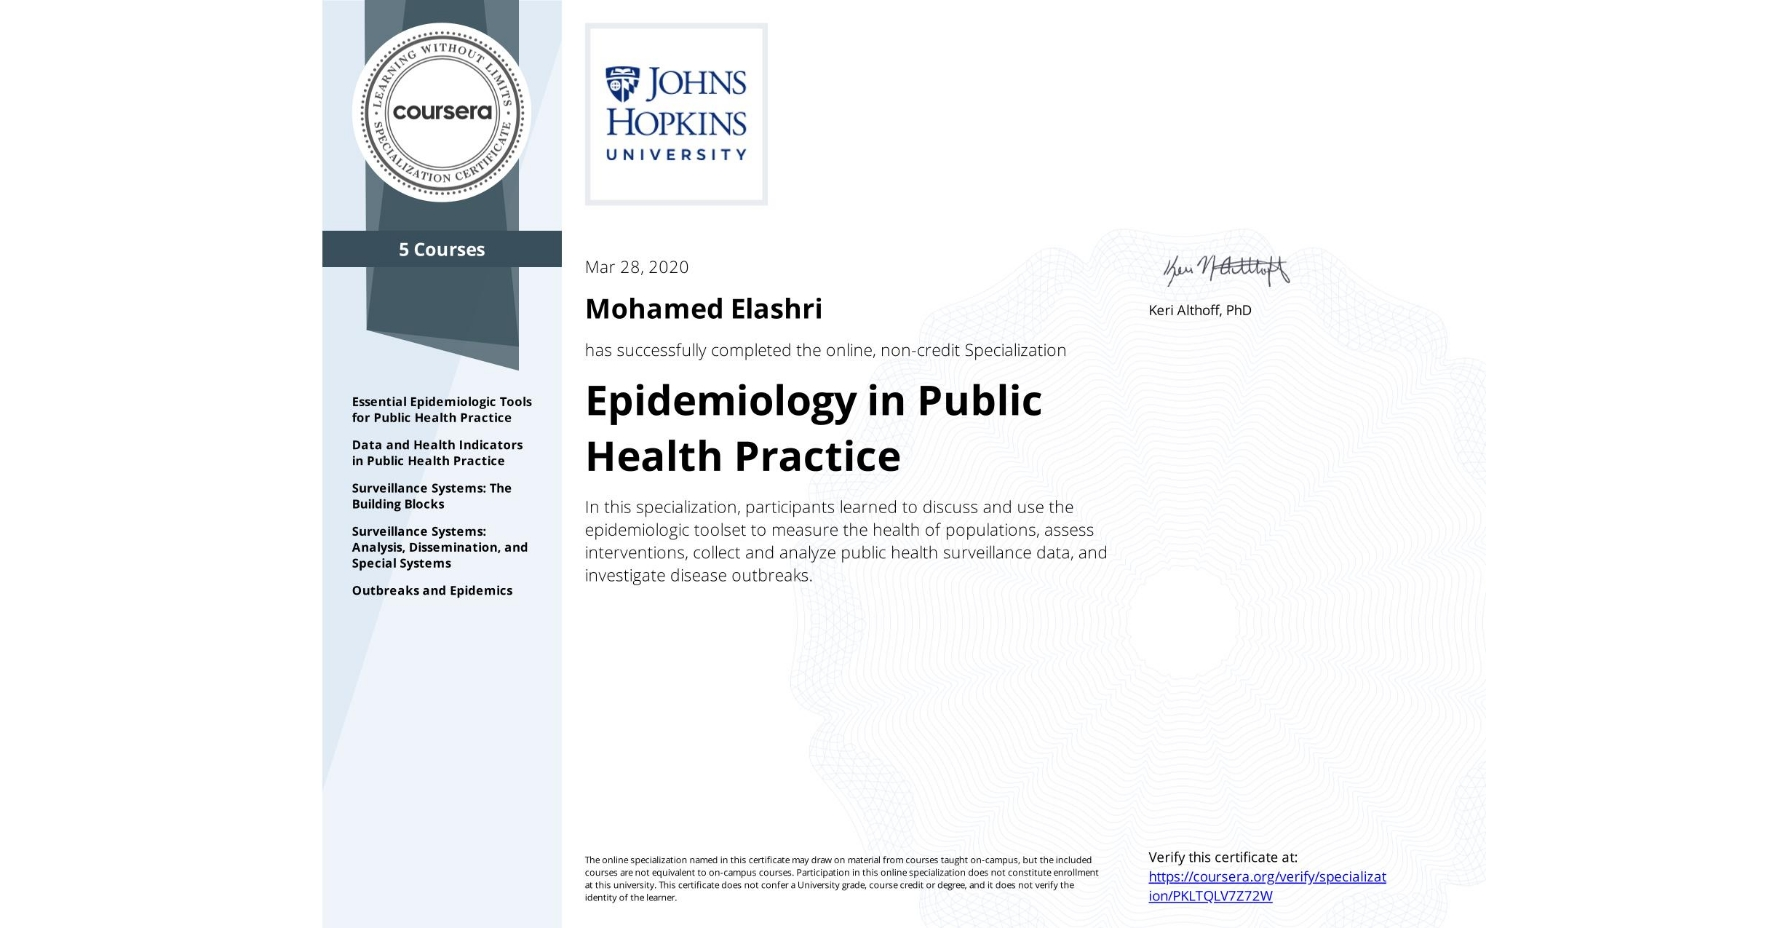 View certificate for Mohamed Elashri, Epidemiology in Public Health Practice, offered through Coursera. In this specialization, participants learned to discuss and use the epidemiologic toolset to measure the health of populations, assess interventions, collect and analyze public health surveillance data, and investigate disease outbreaks.